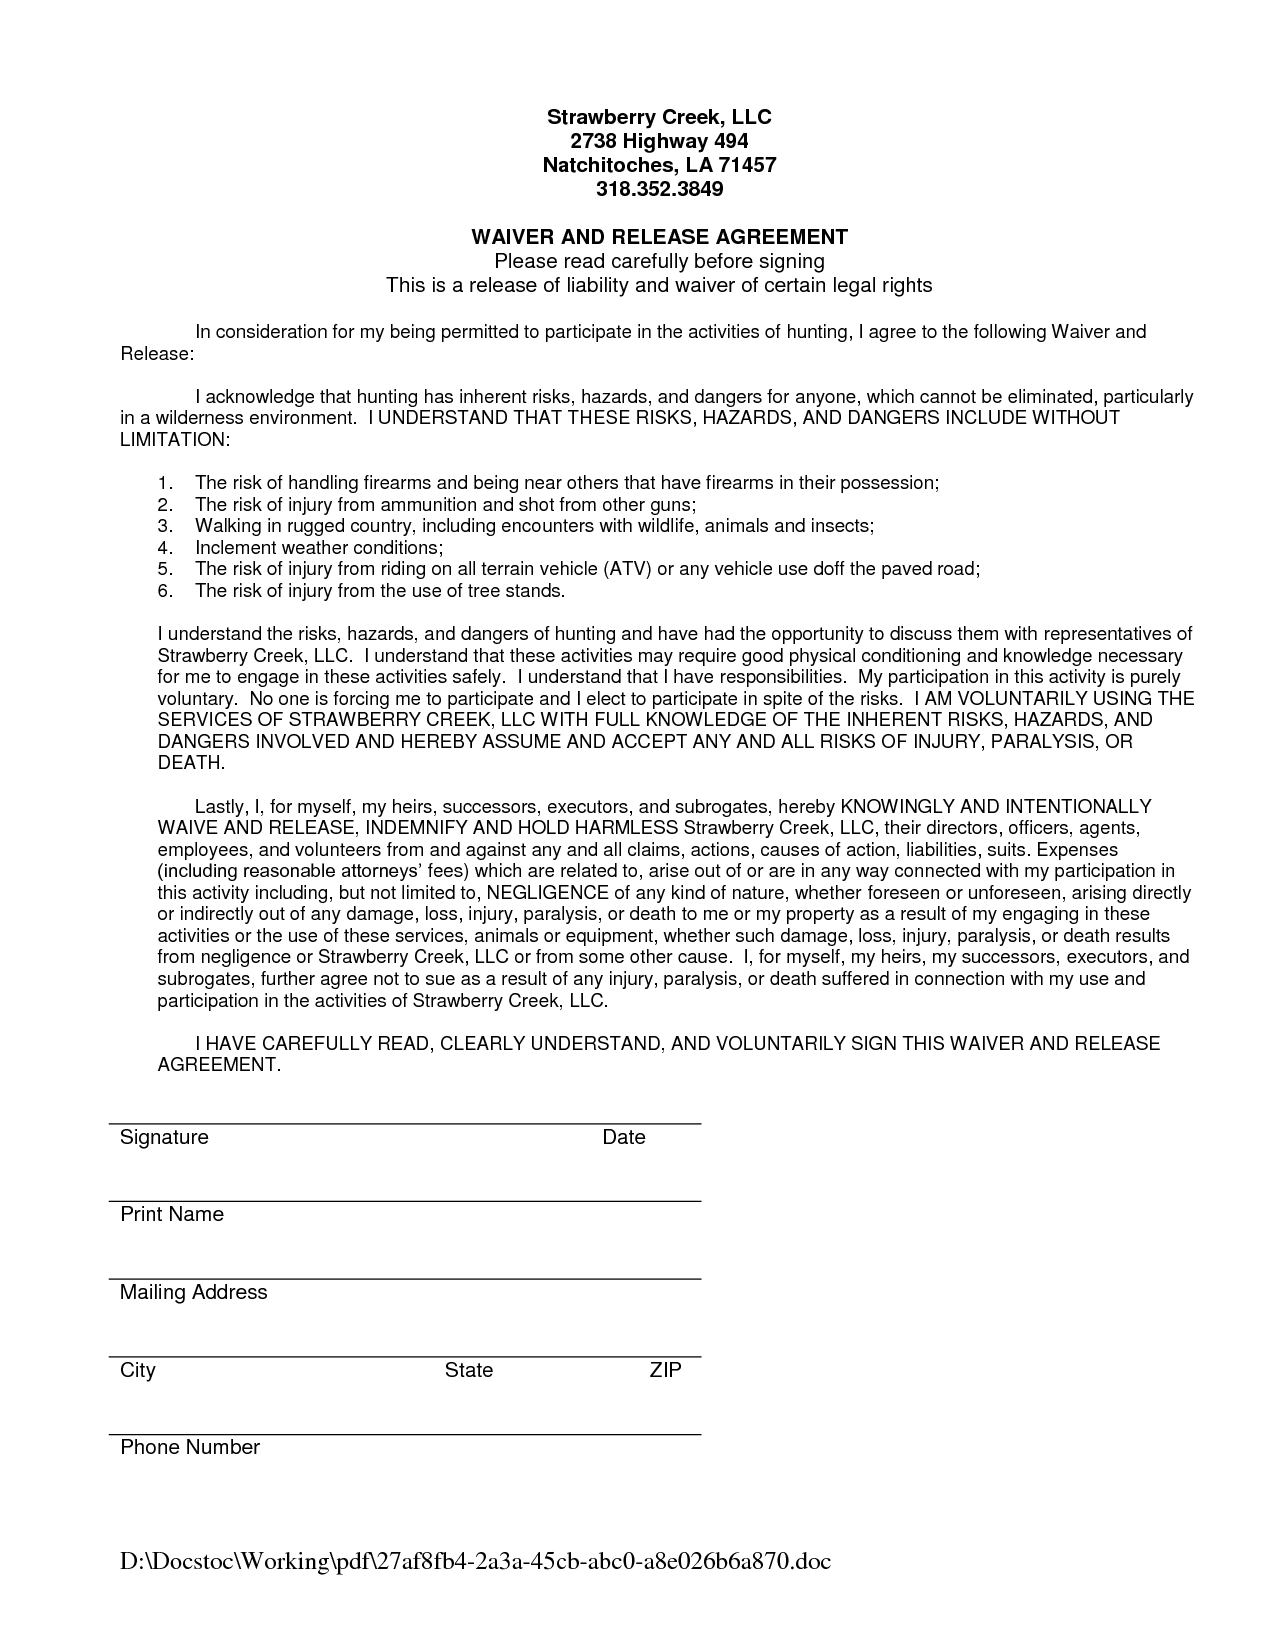 Waiver And Release Of Liability Form Sample Swifterco waiver – Release of Liability Form Sample